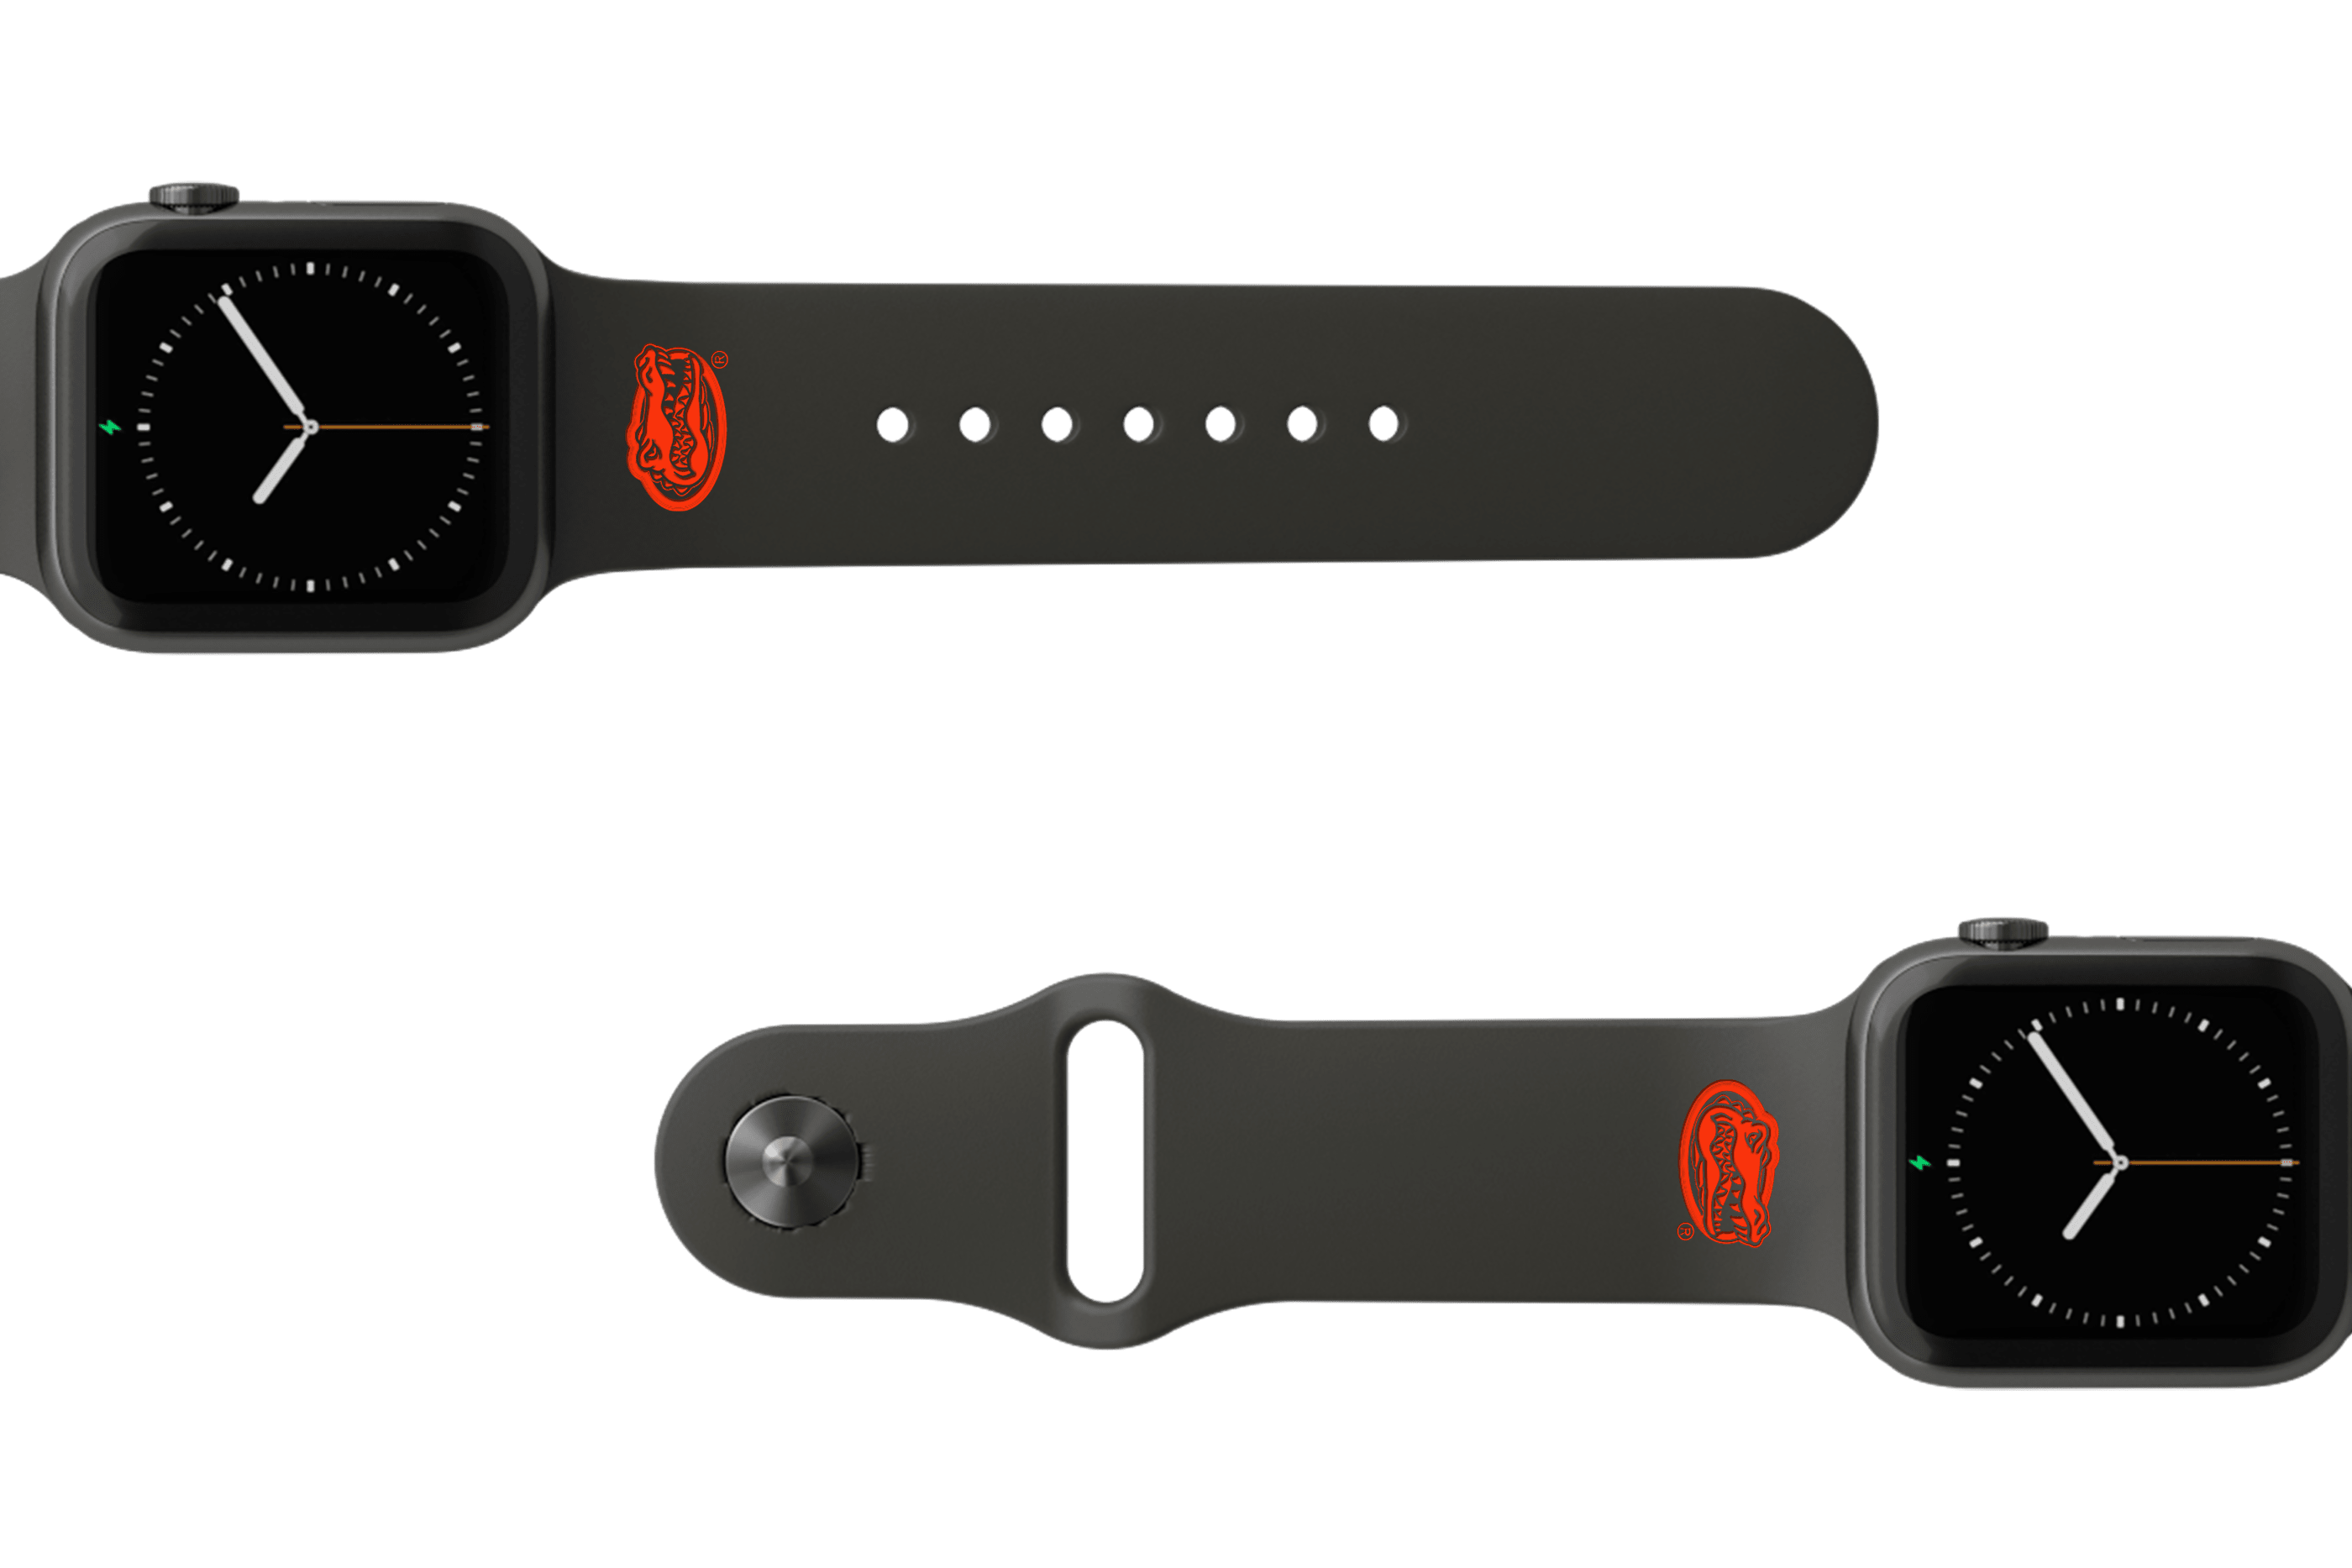 College Florida Black apple watch band with gray hardware viewed from rear